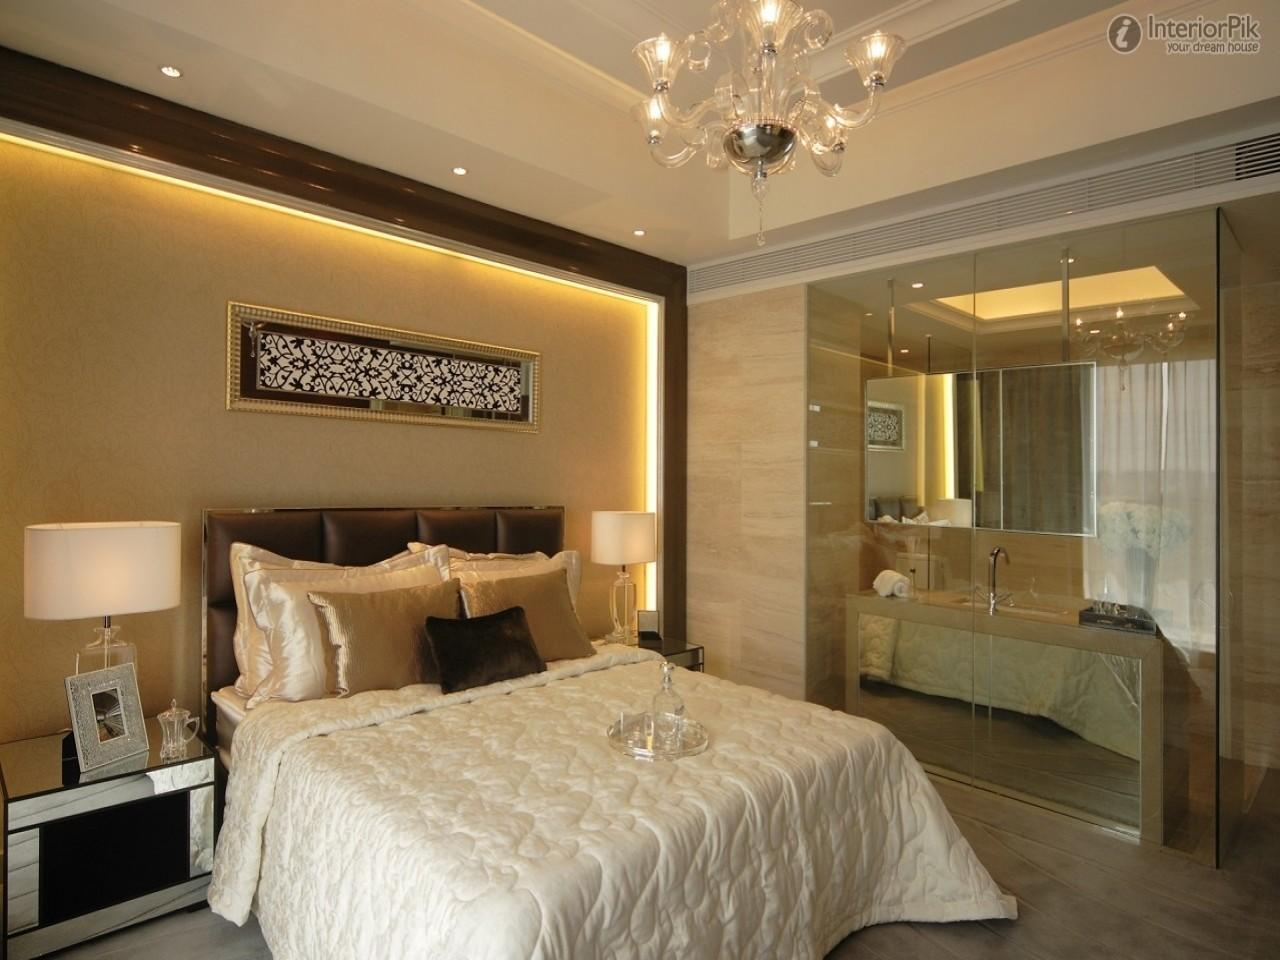 Master Bedroom Bathroom Designs Adding Beach House Touch